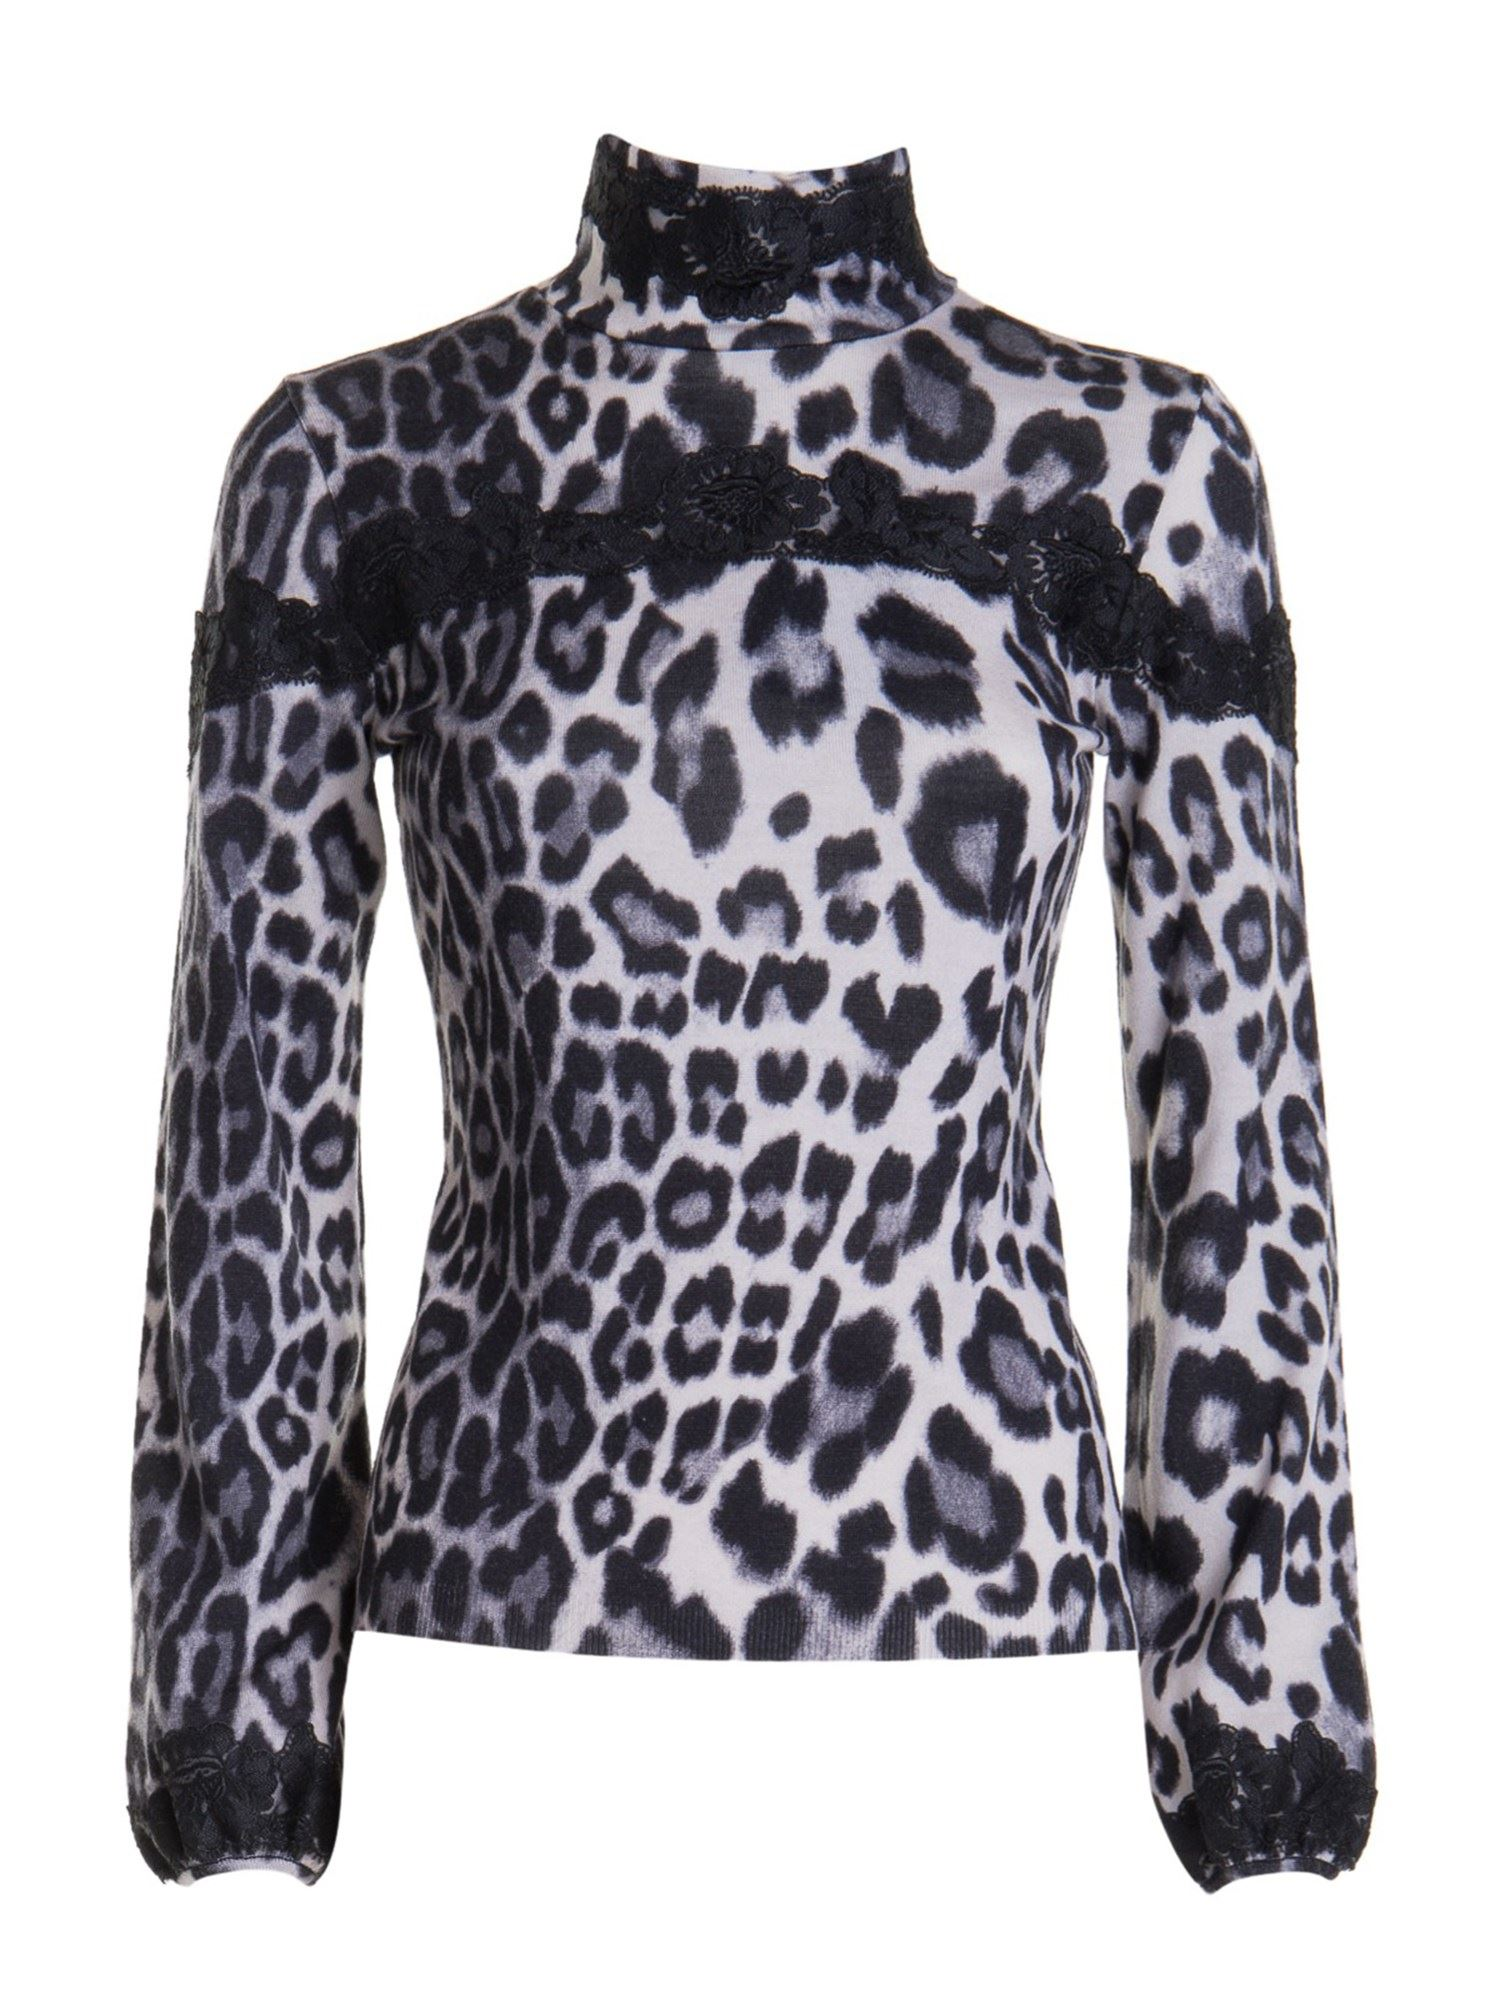 Blumarine LACE TRIM ANIMAL PRINT TURTLENECK